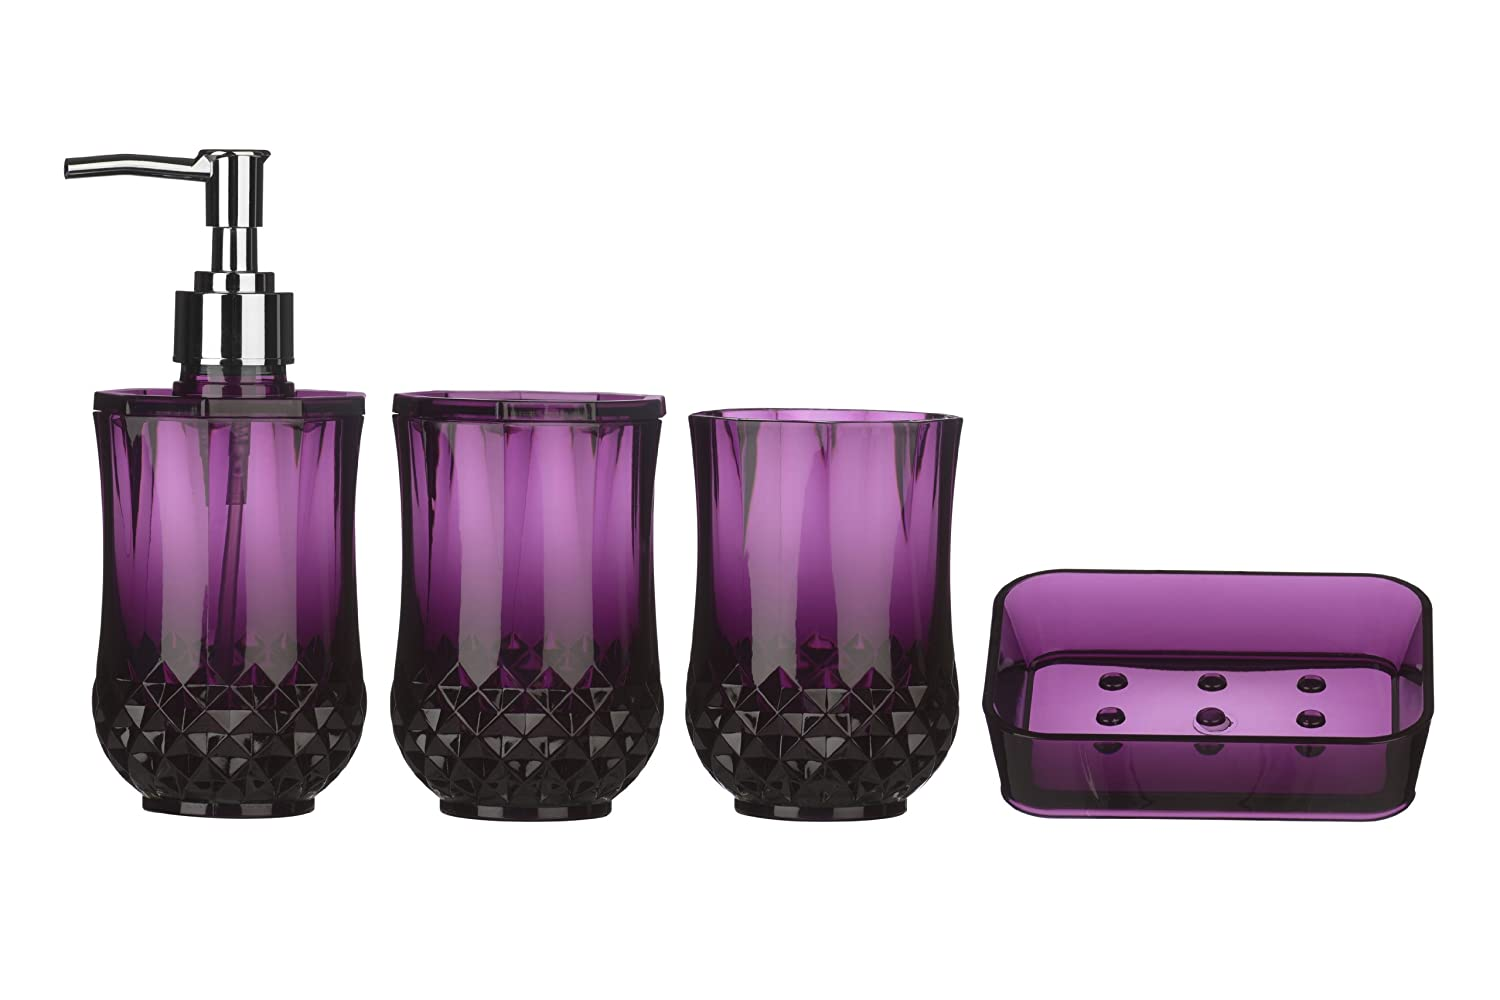 premier housewares cristallo bathroom set 4 pieces purple amazoncouk kitchen home